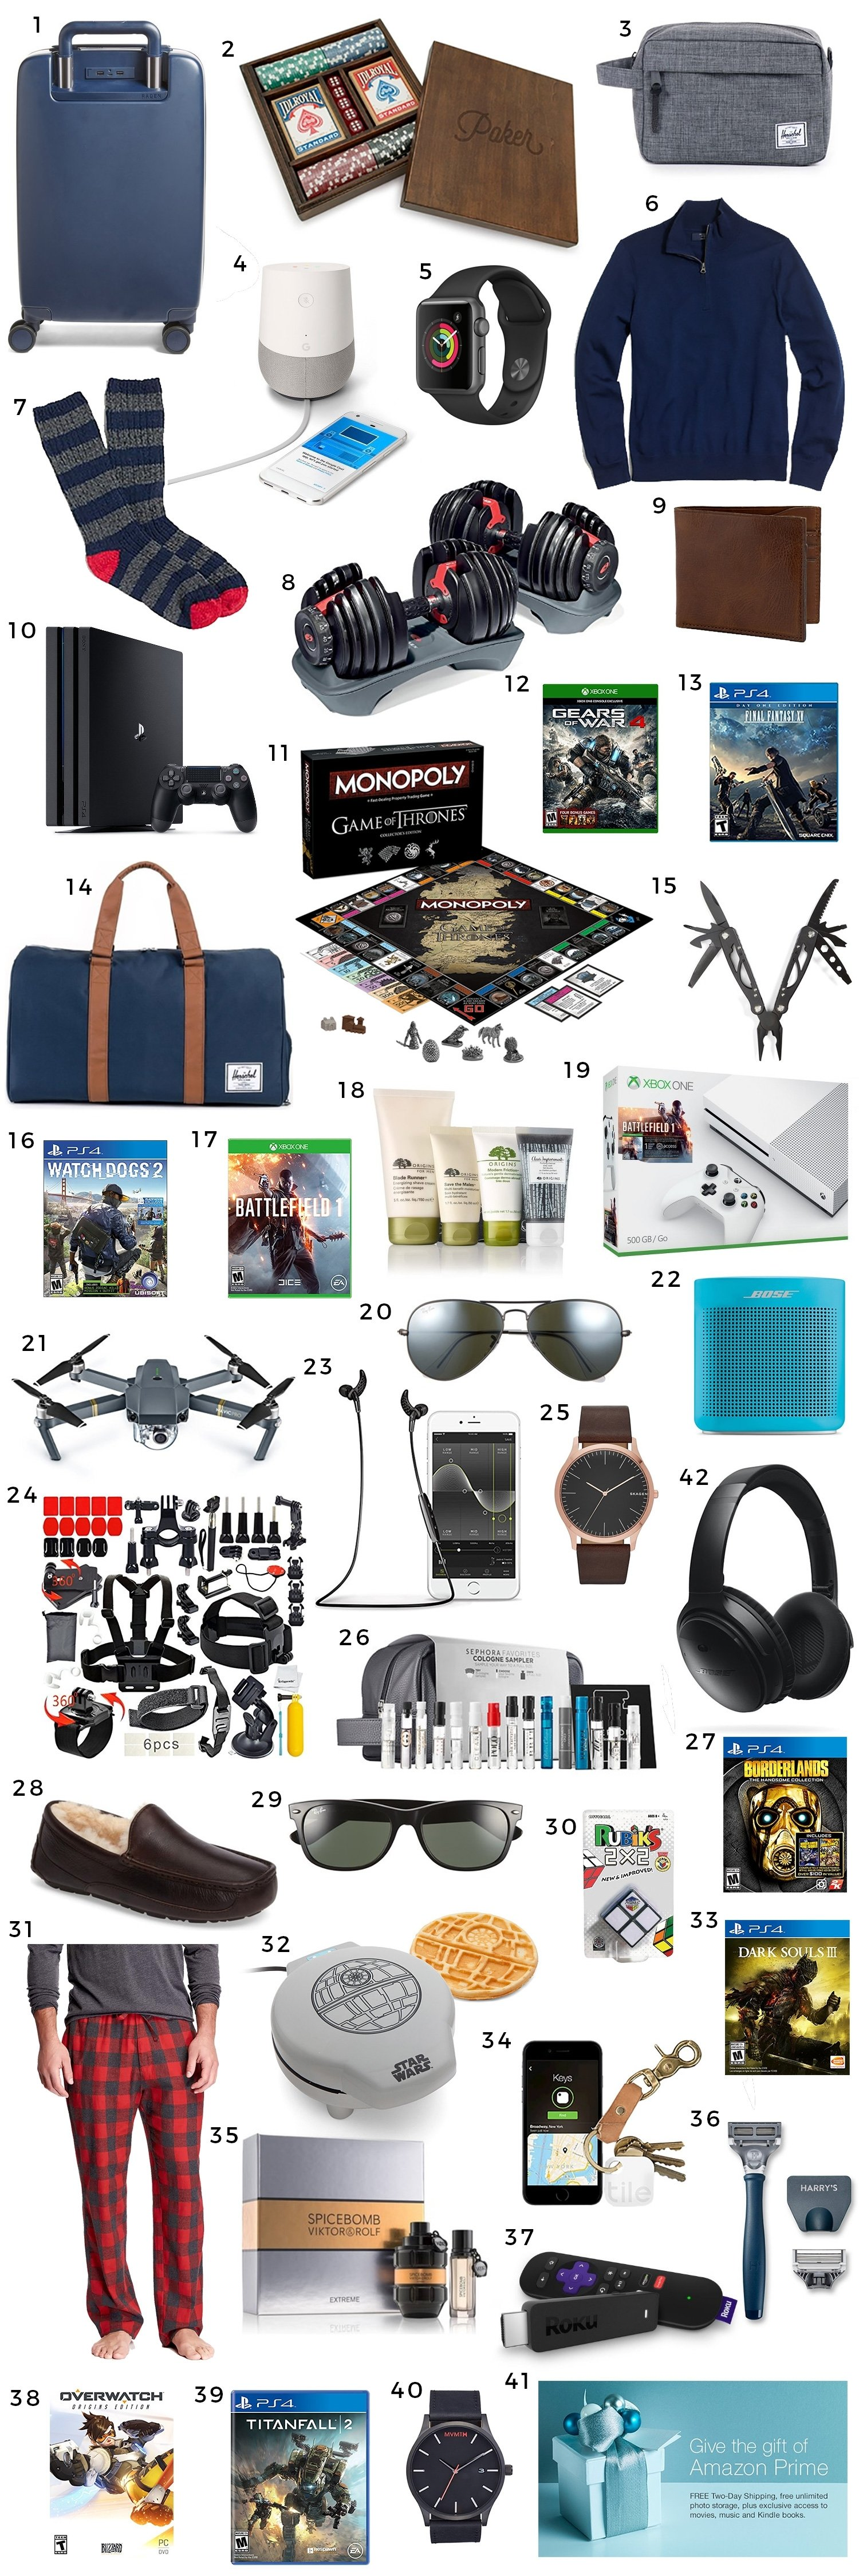 10 elegant christmas present ideas for men the best christmas gift ideas for men ashley brooke - What Is A Good Christmas Present